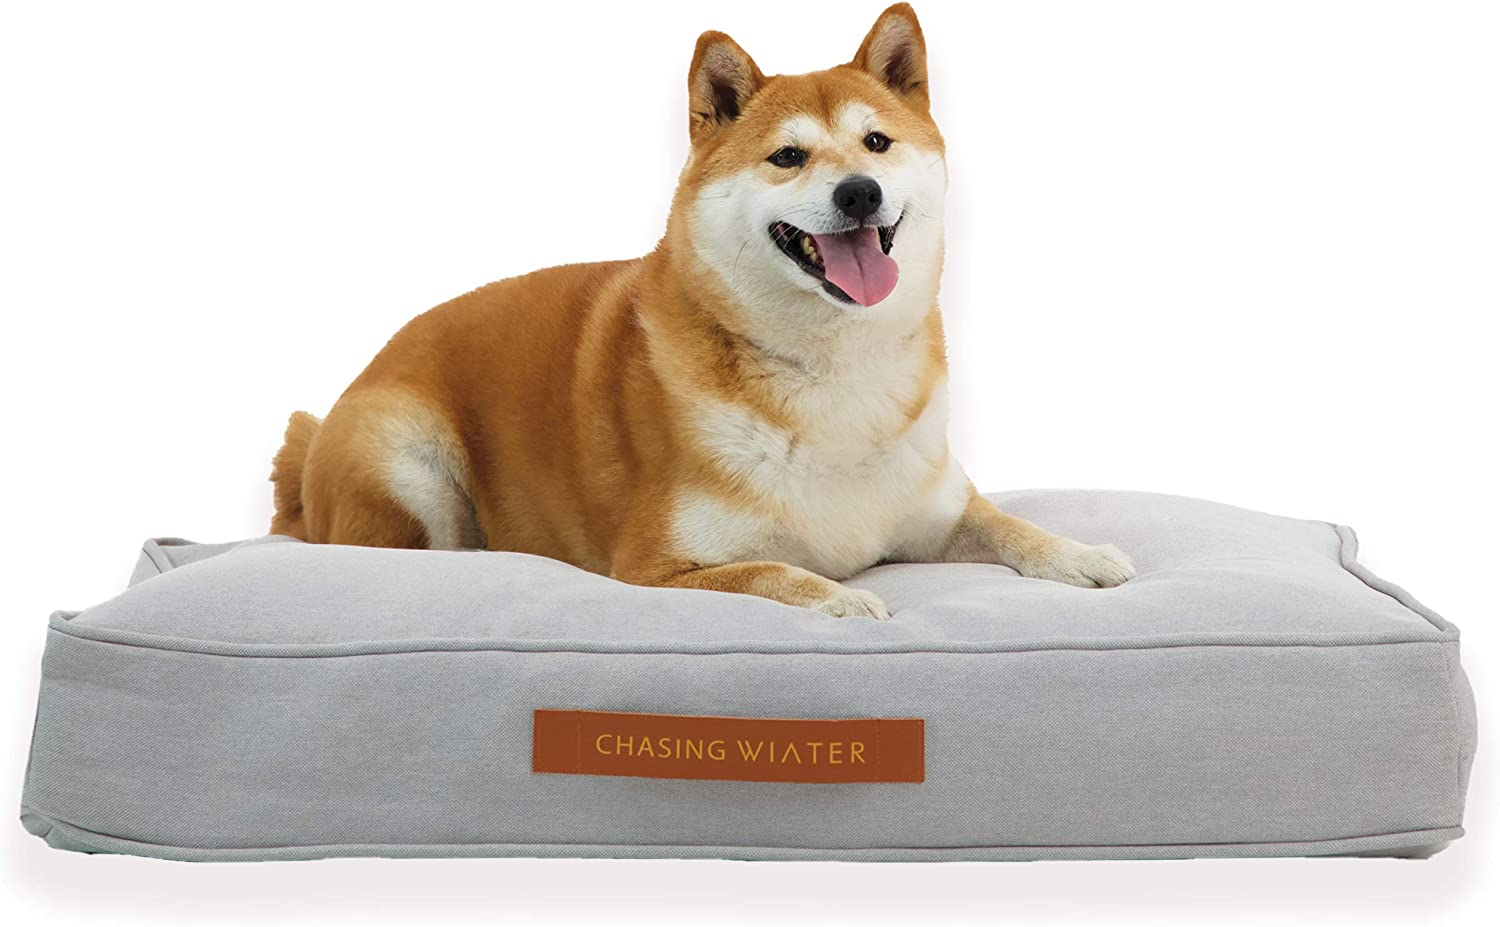 Chasing Winter Pet Beds/Dog Beds/Calming Bed for Dogs with Orthopedic Memory Foam, Removable Cover, Heavy-Duty Linen Look Cover